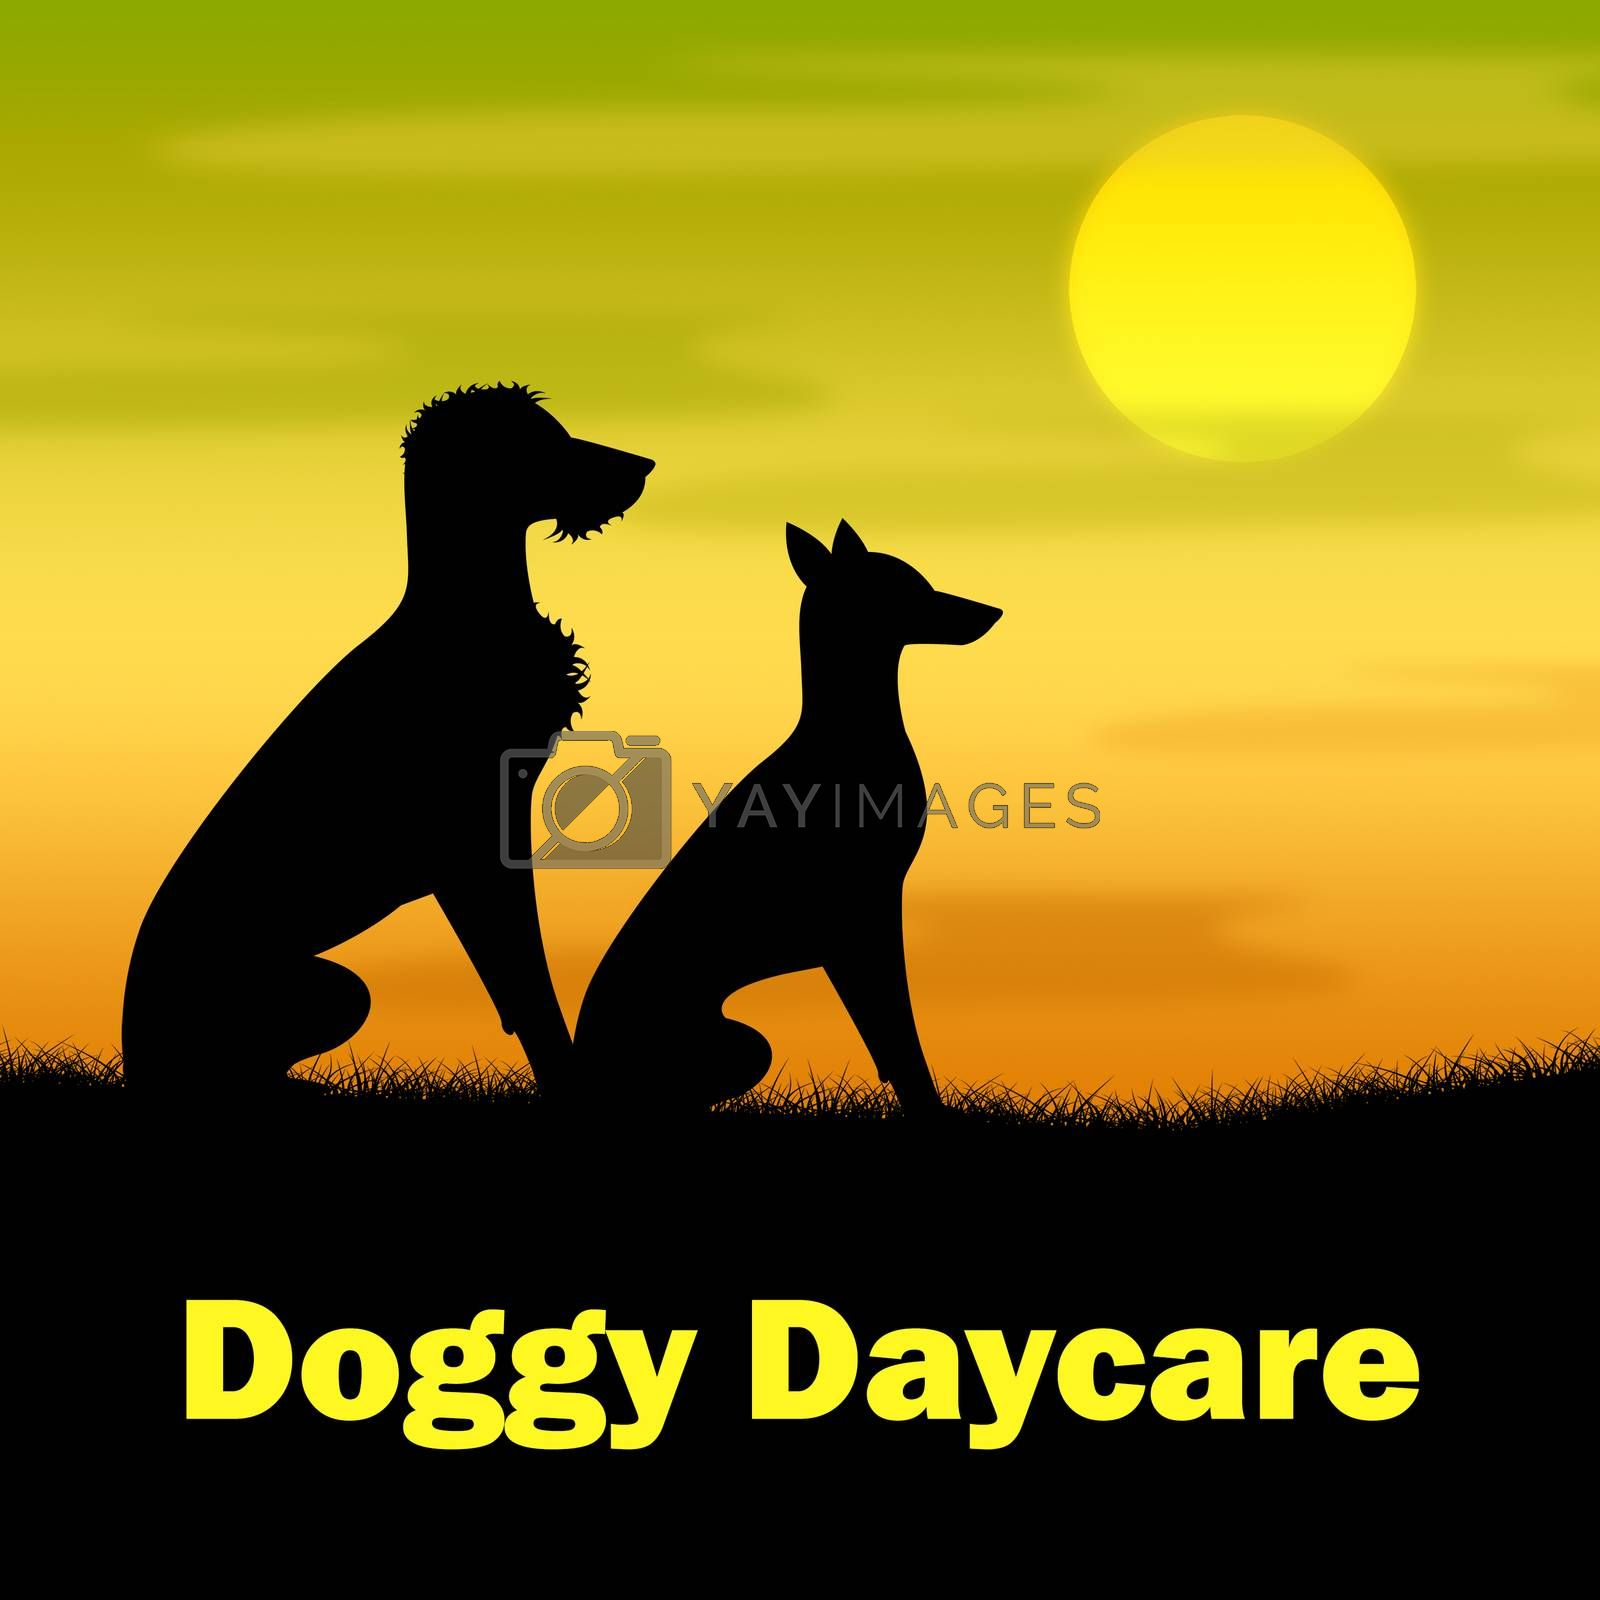 Doggy Daycare Indicating Grassy Canines And Night